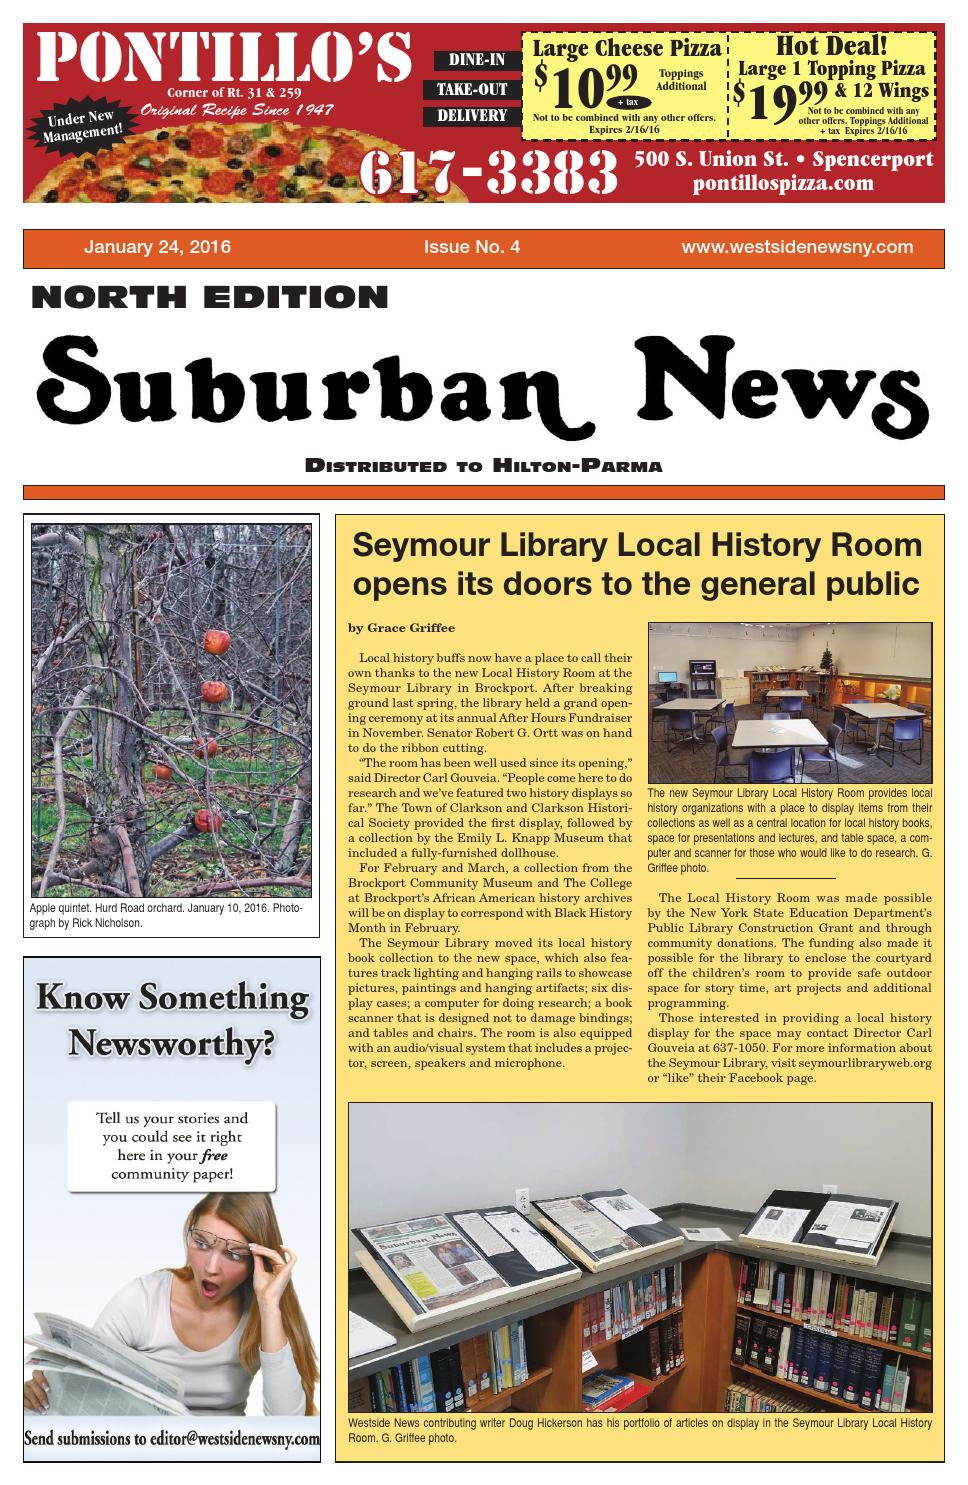 suburban news north edition by westside news suburban news north edition 24 2016 by westside news inc issuu